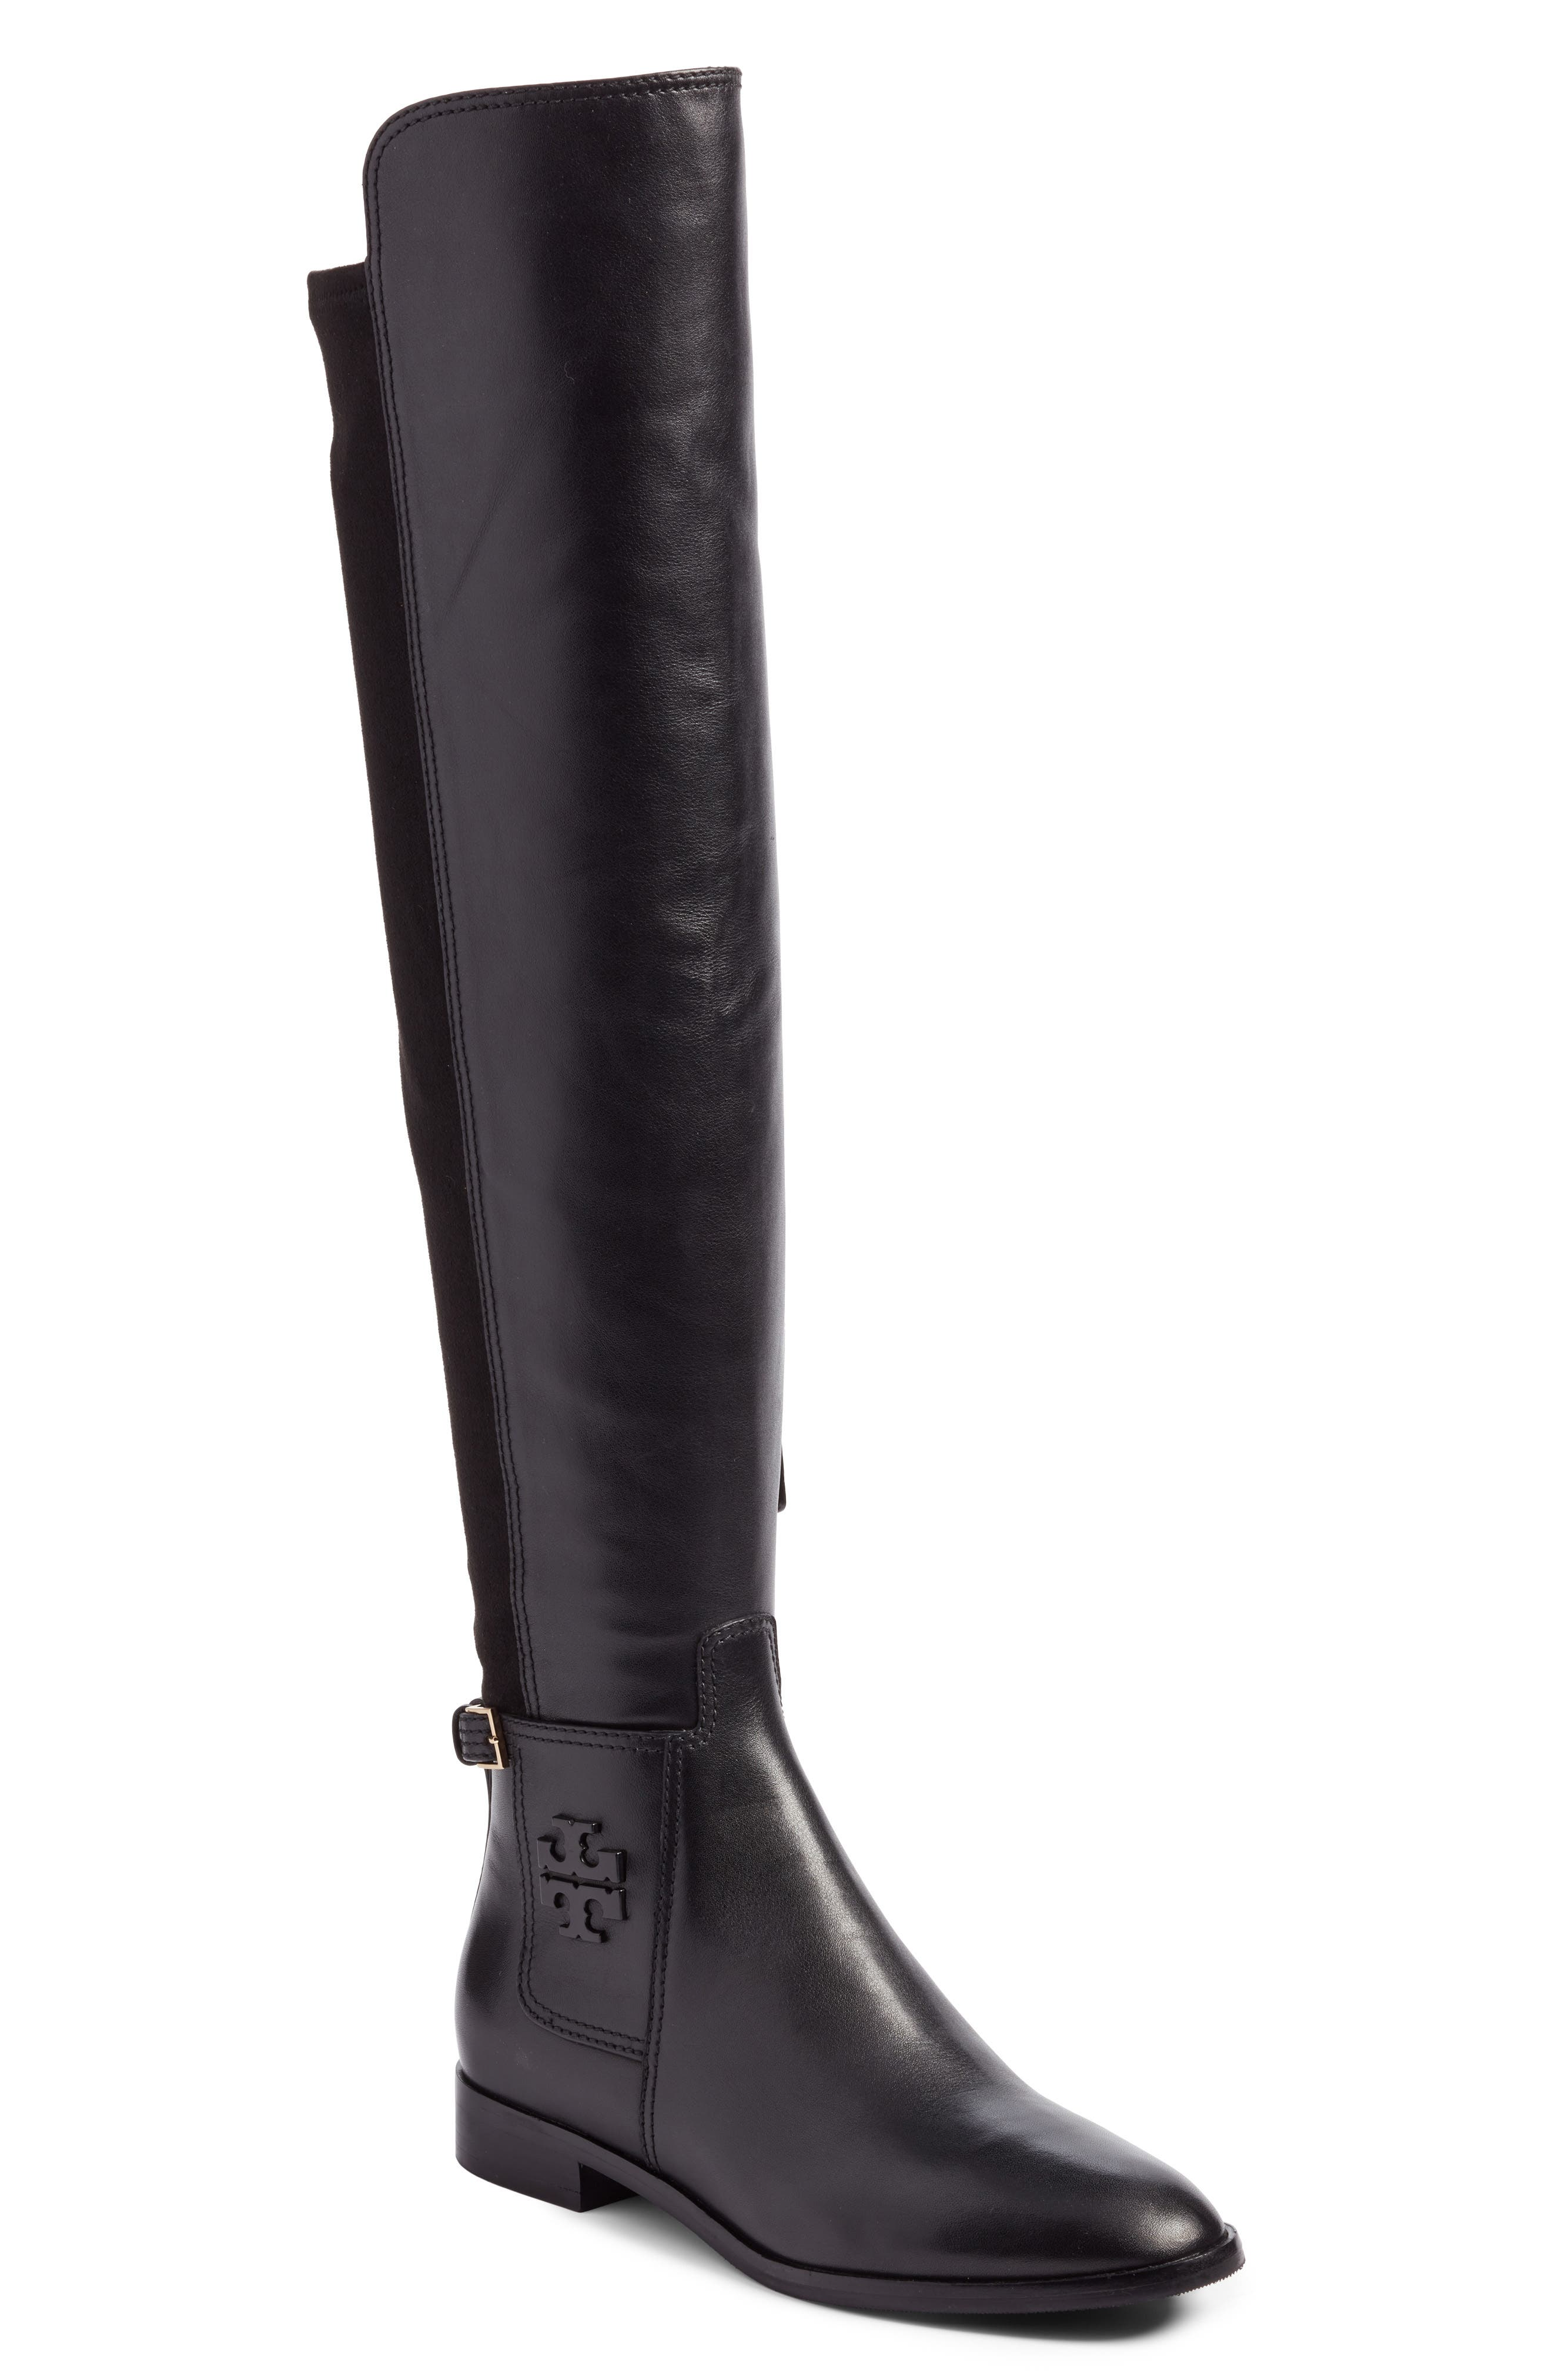 TORY BURCH,                             Wyatt Over the Knee Boot,                             Main thumbnail 1, color,                             001